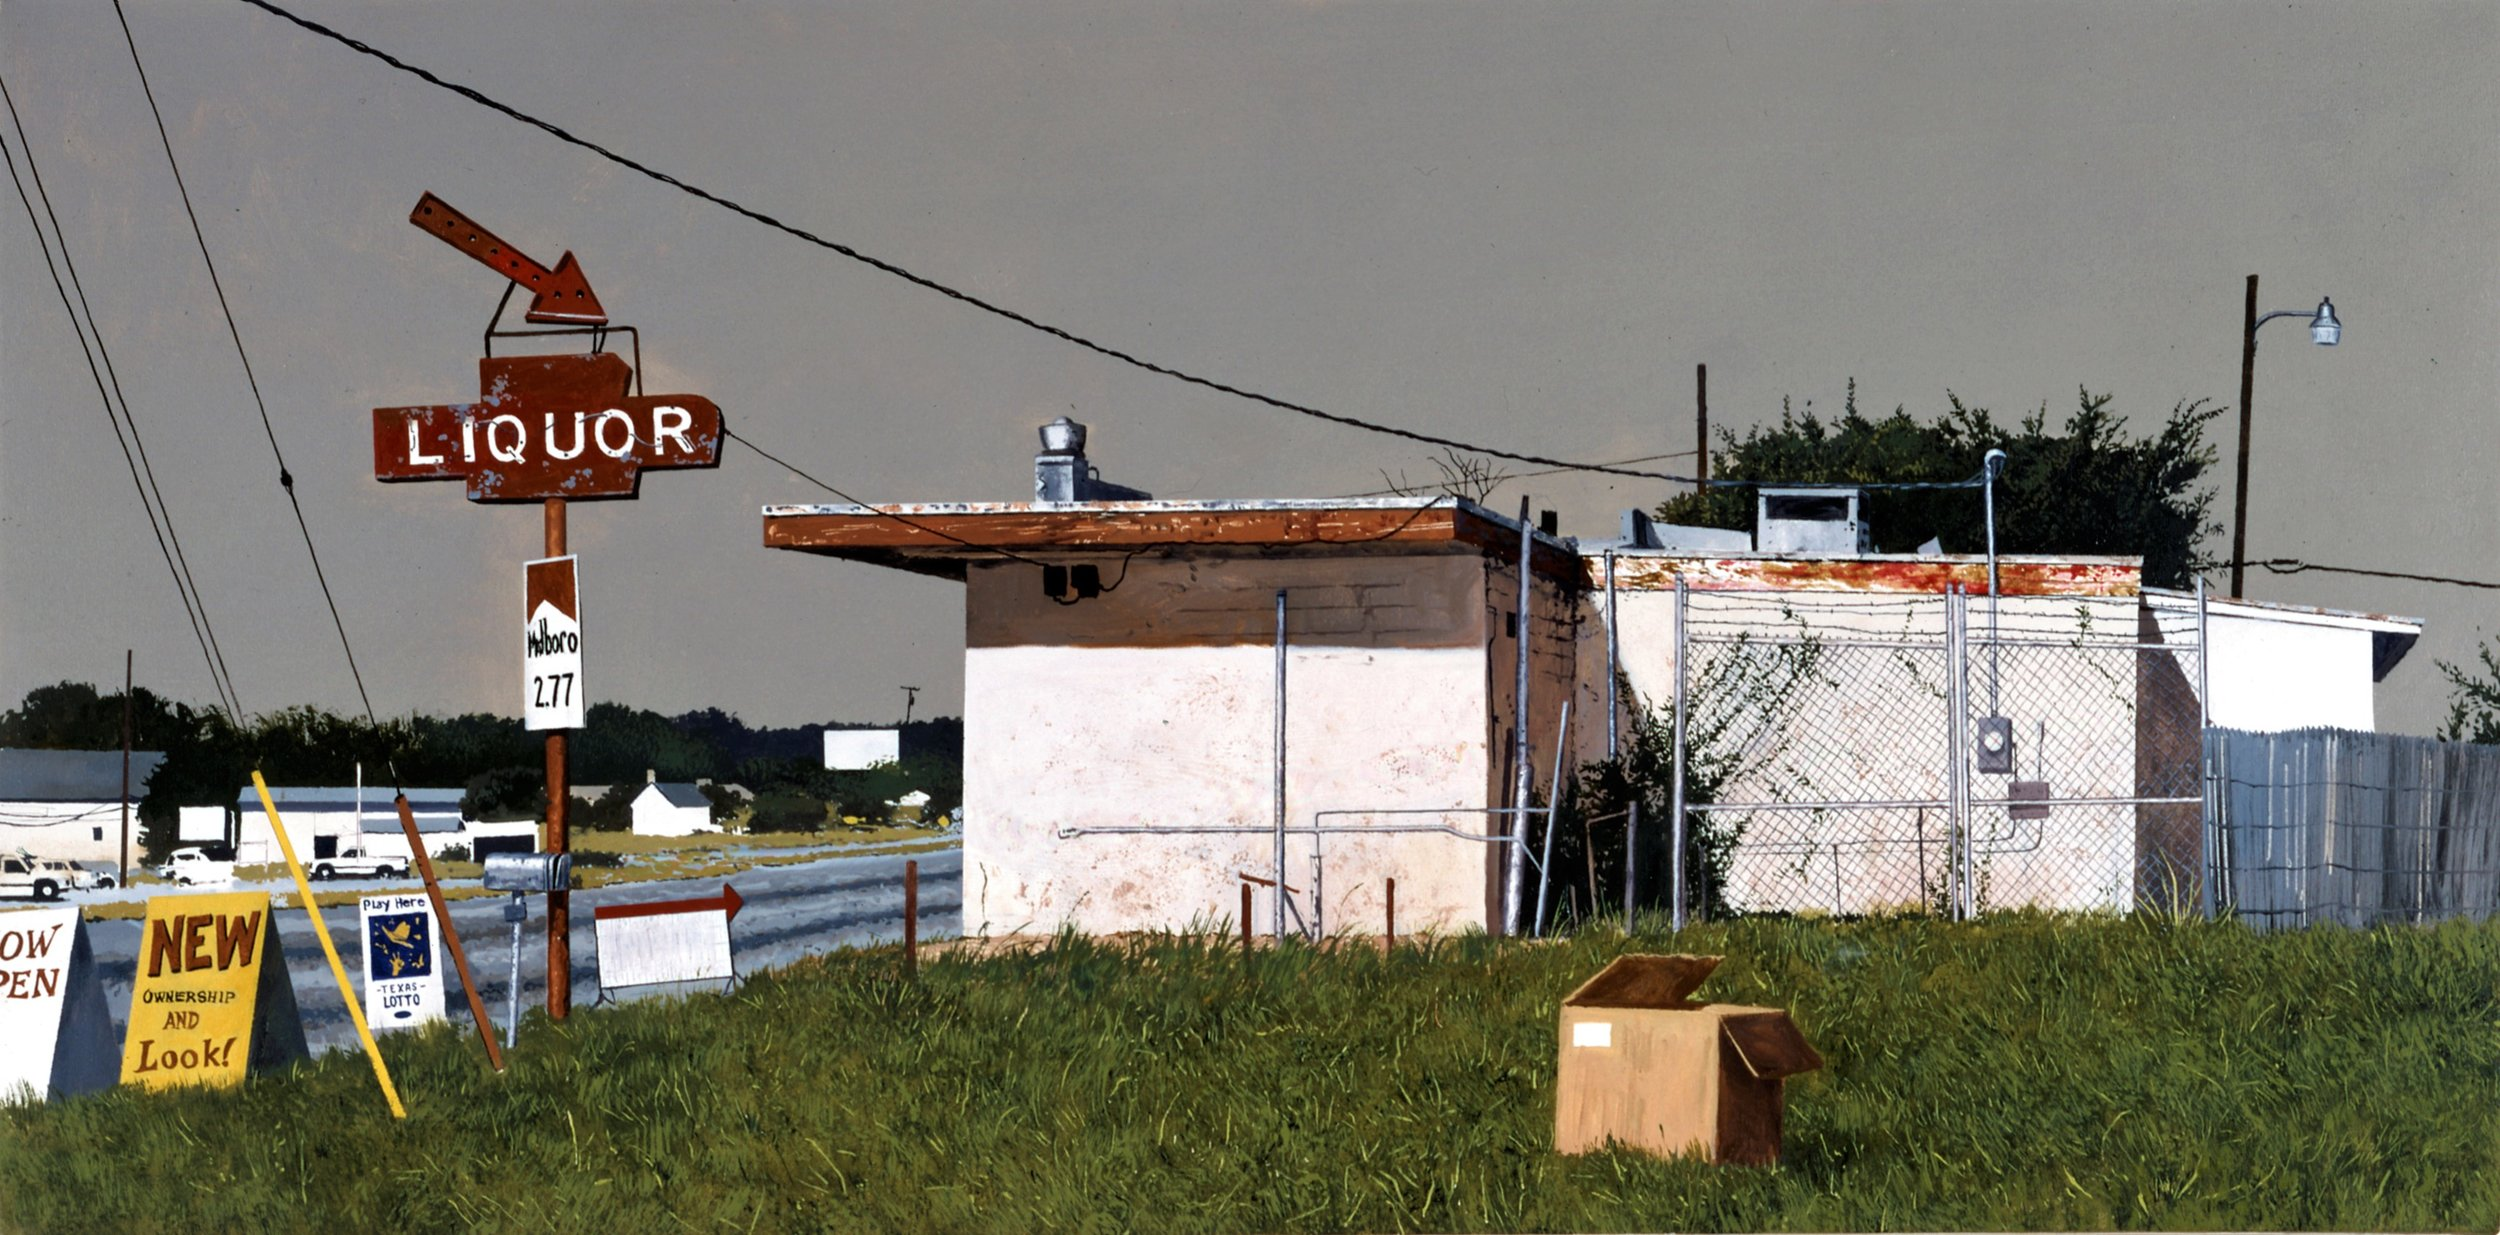 Daniel Blagg,  Liquor Store,  2004, oil on canvas, 36 x 60""